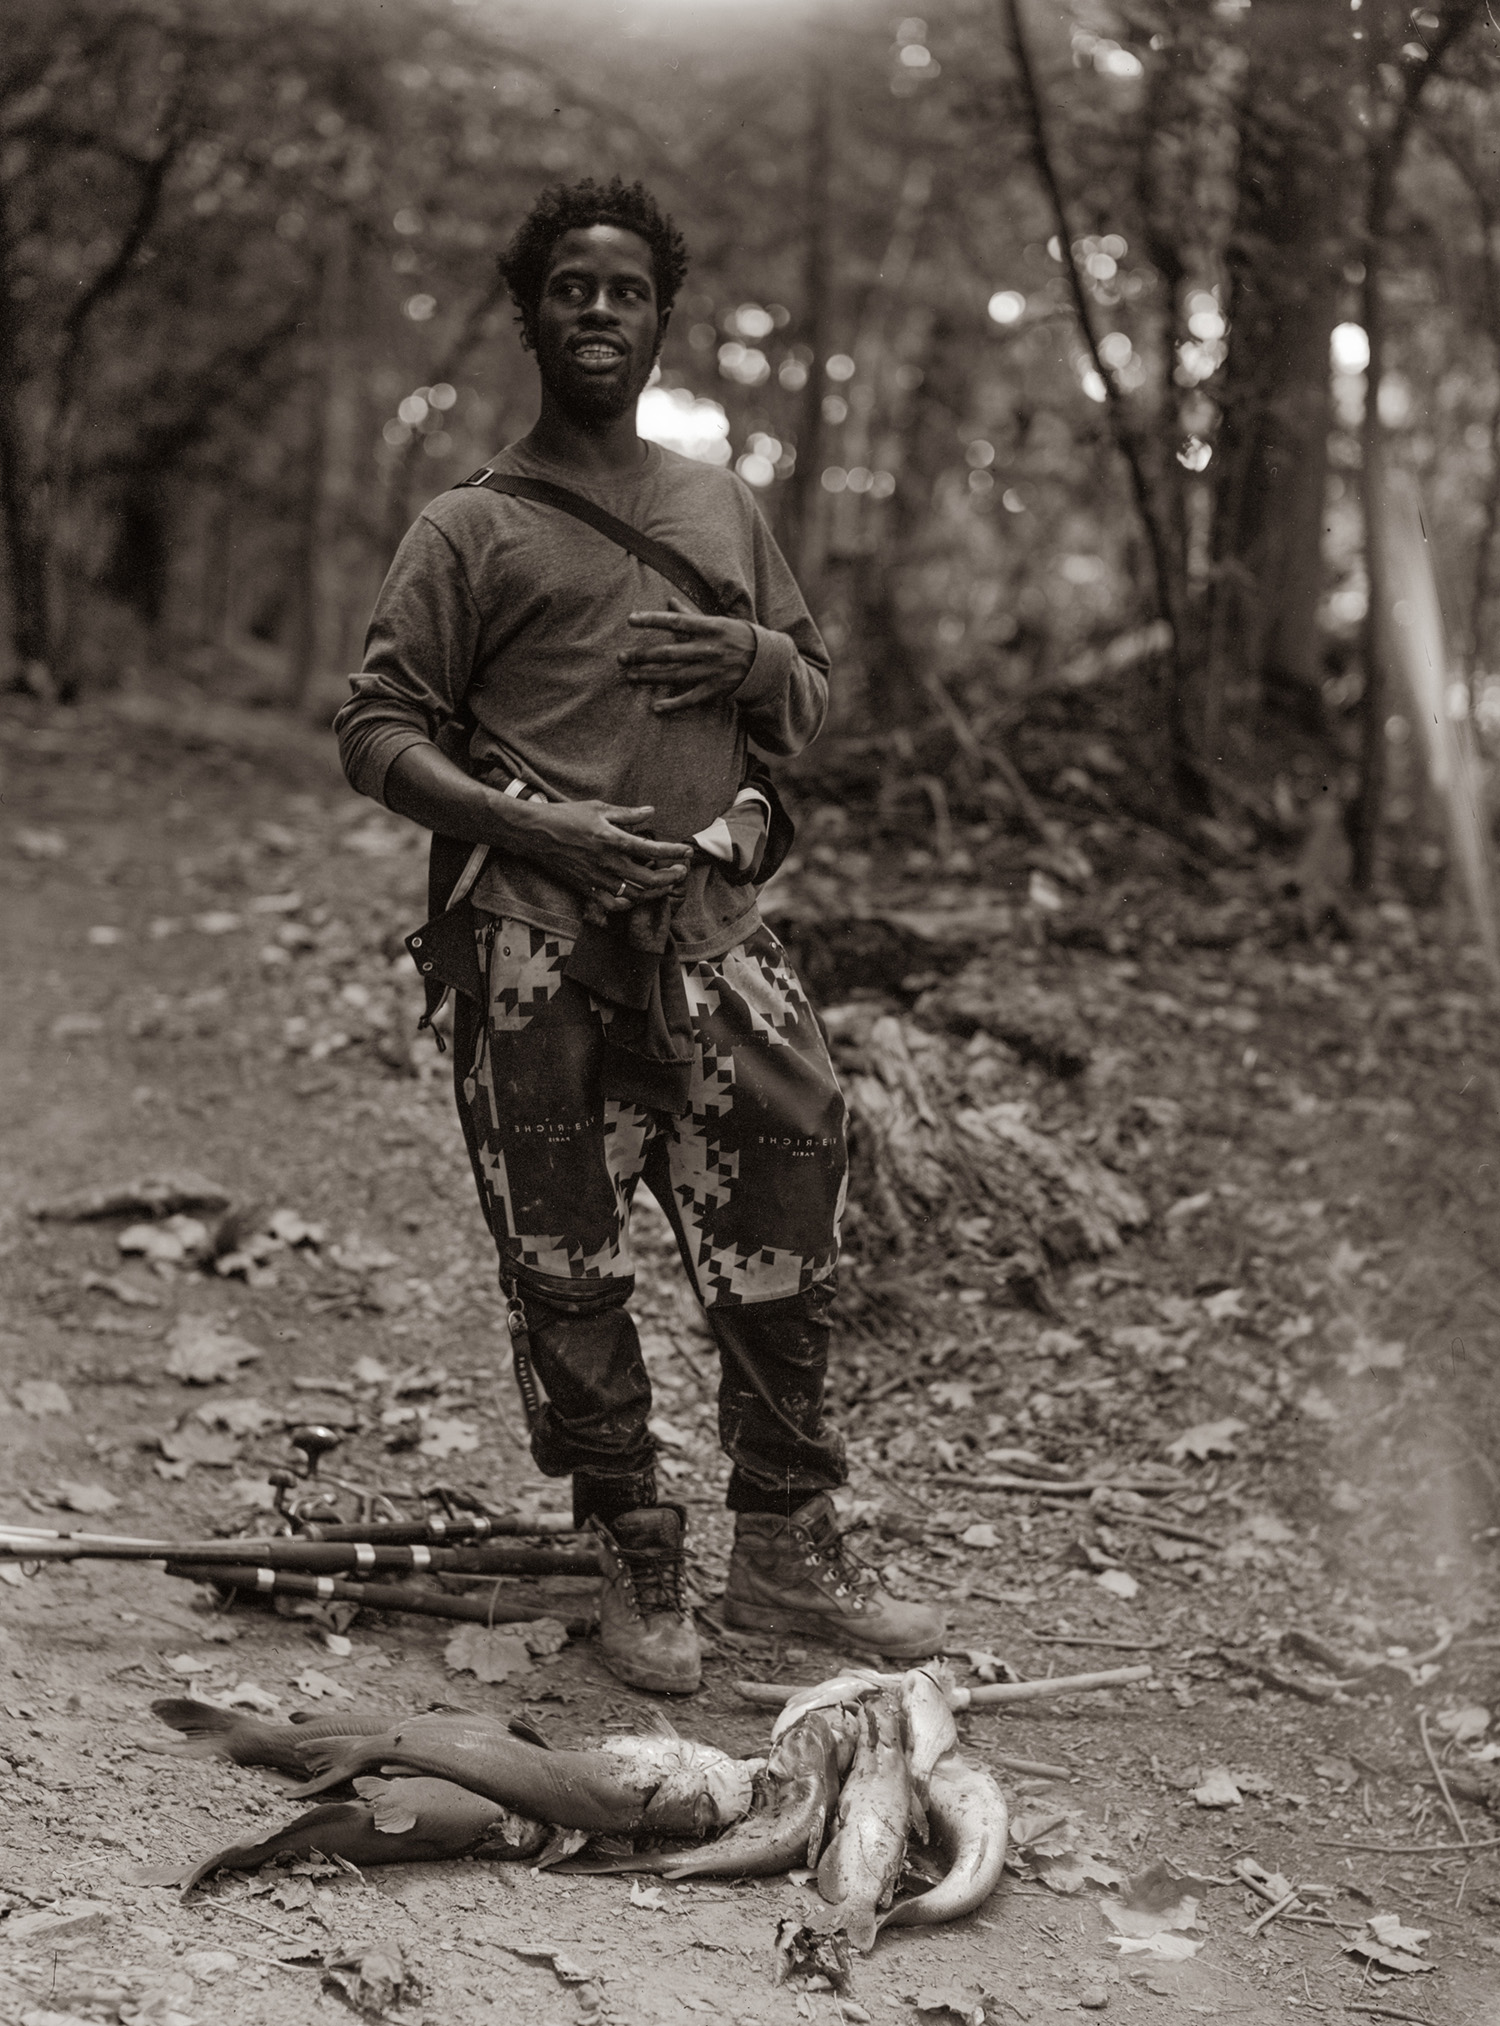 A fisherman stands in the woods next to fish he caught.